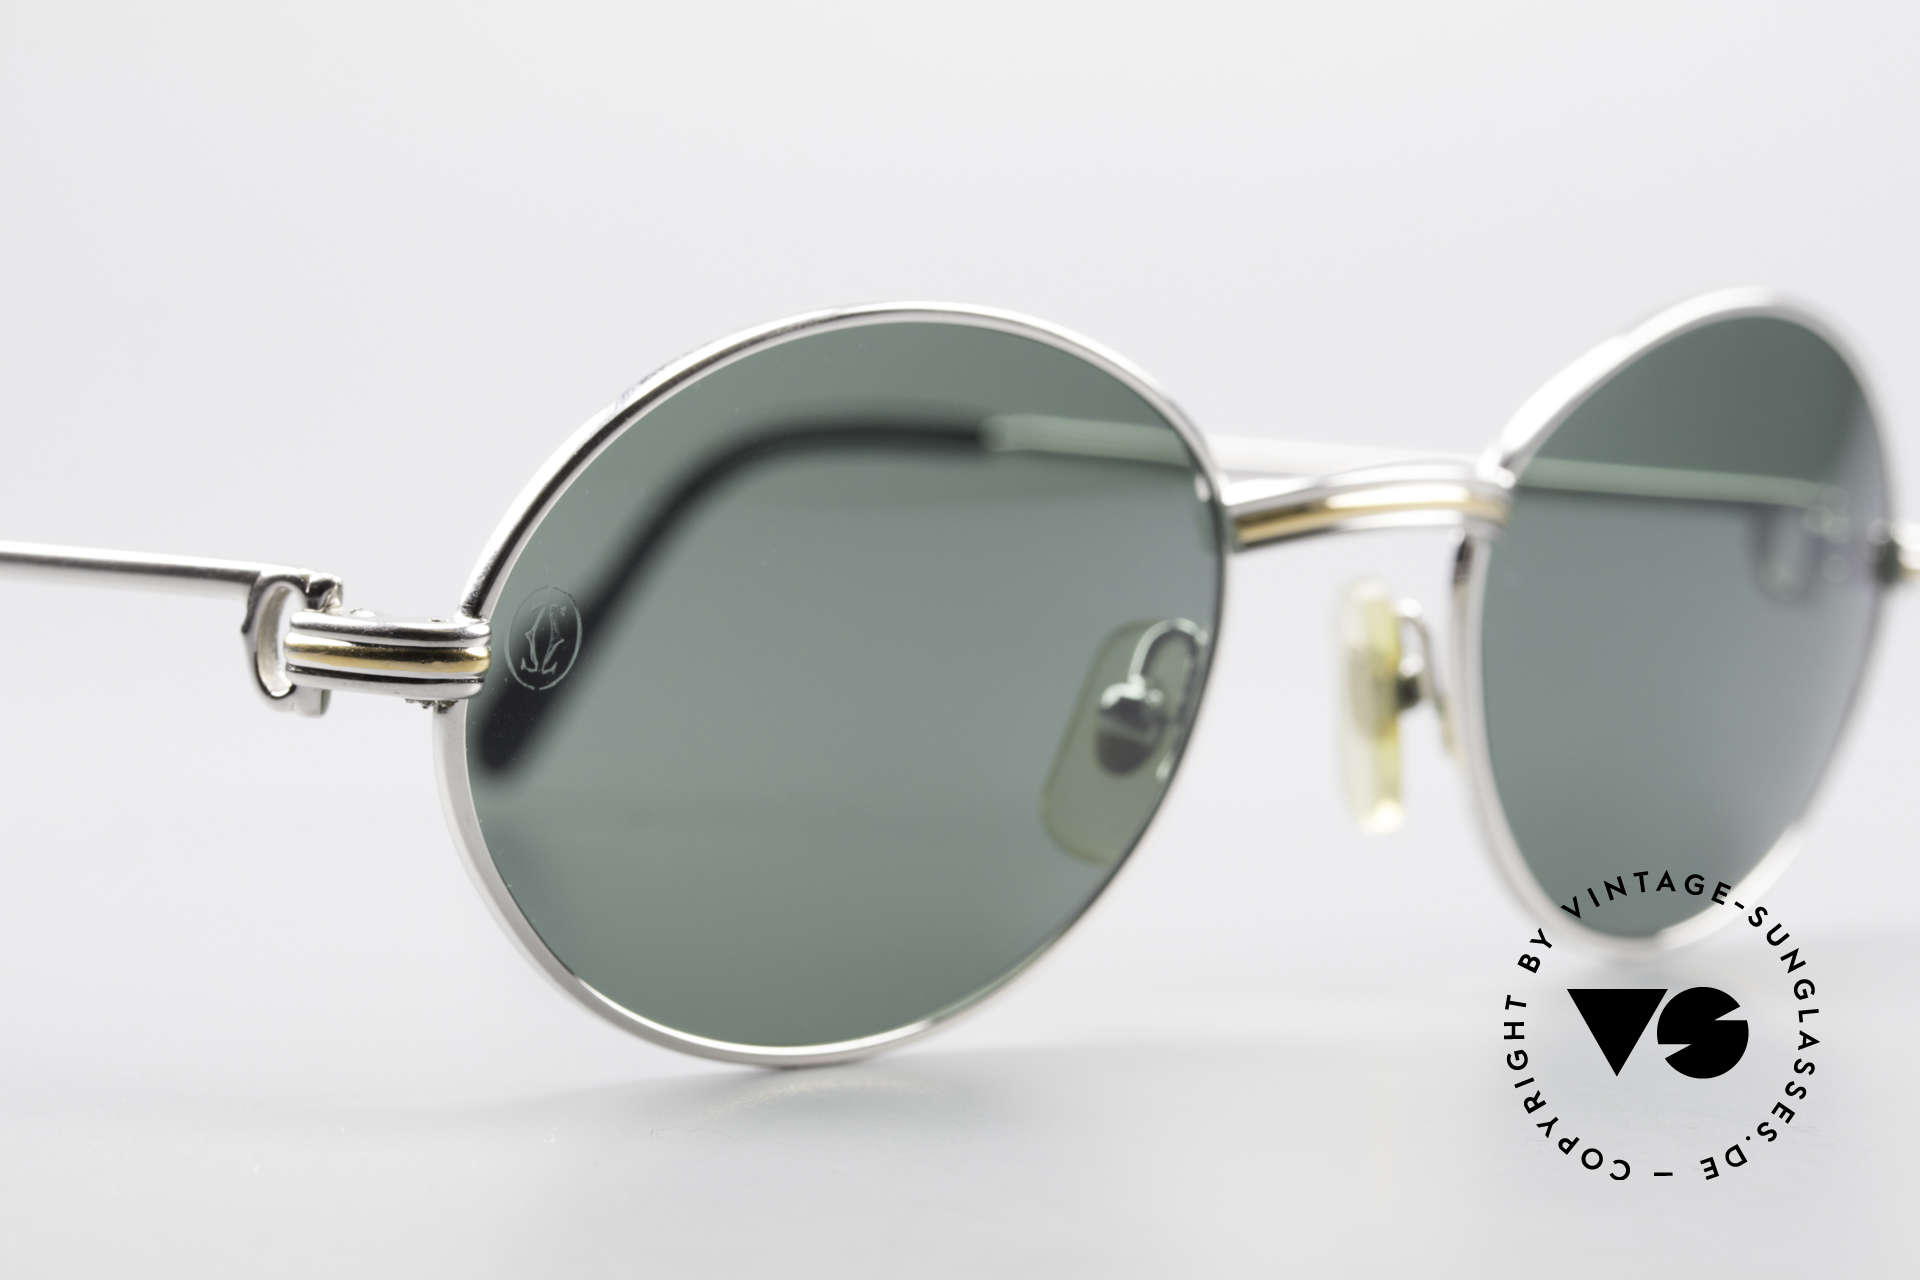 Cartier Saint Honore Oval Luxury Sunglasses 90's, 2. hand, but in great condition (scratch-free lenses), Made for Men